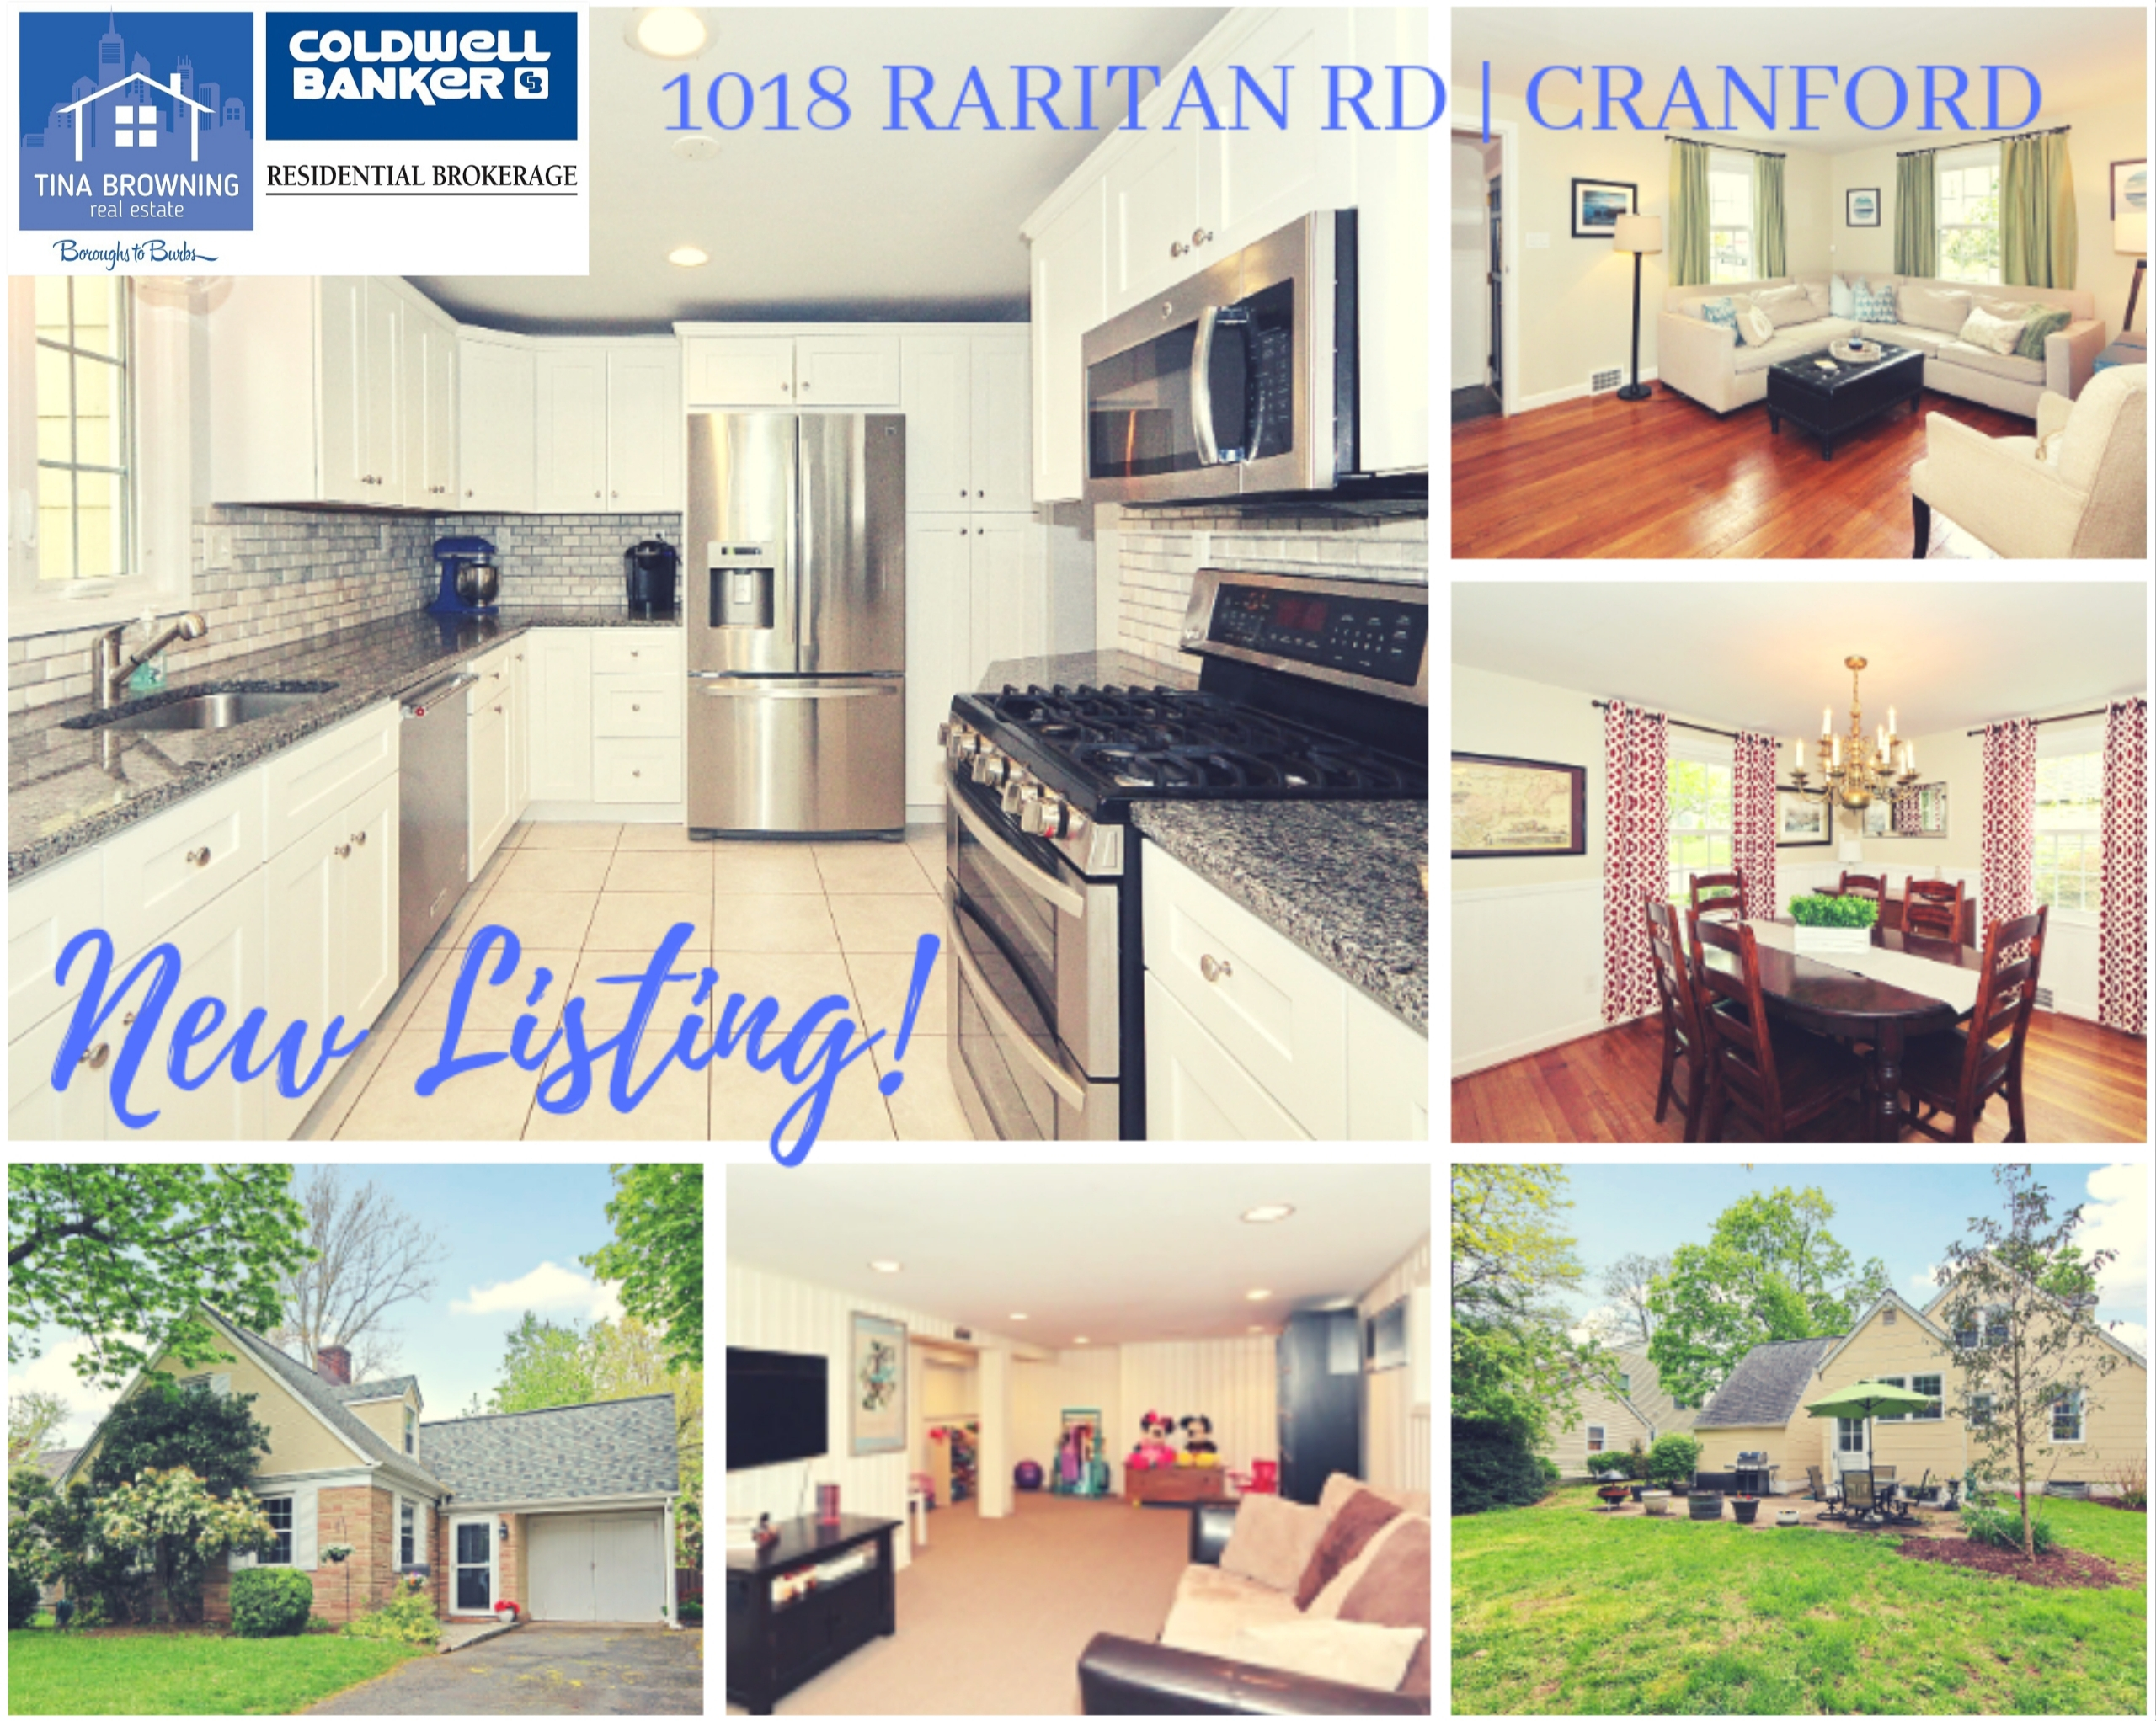 New Listing! 1018 Raritan Road, Cranford